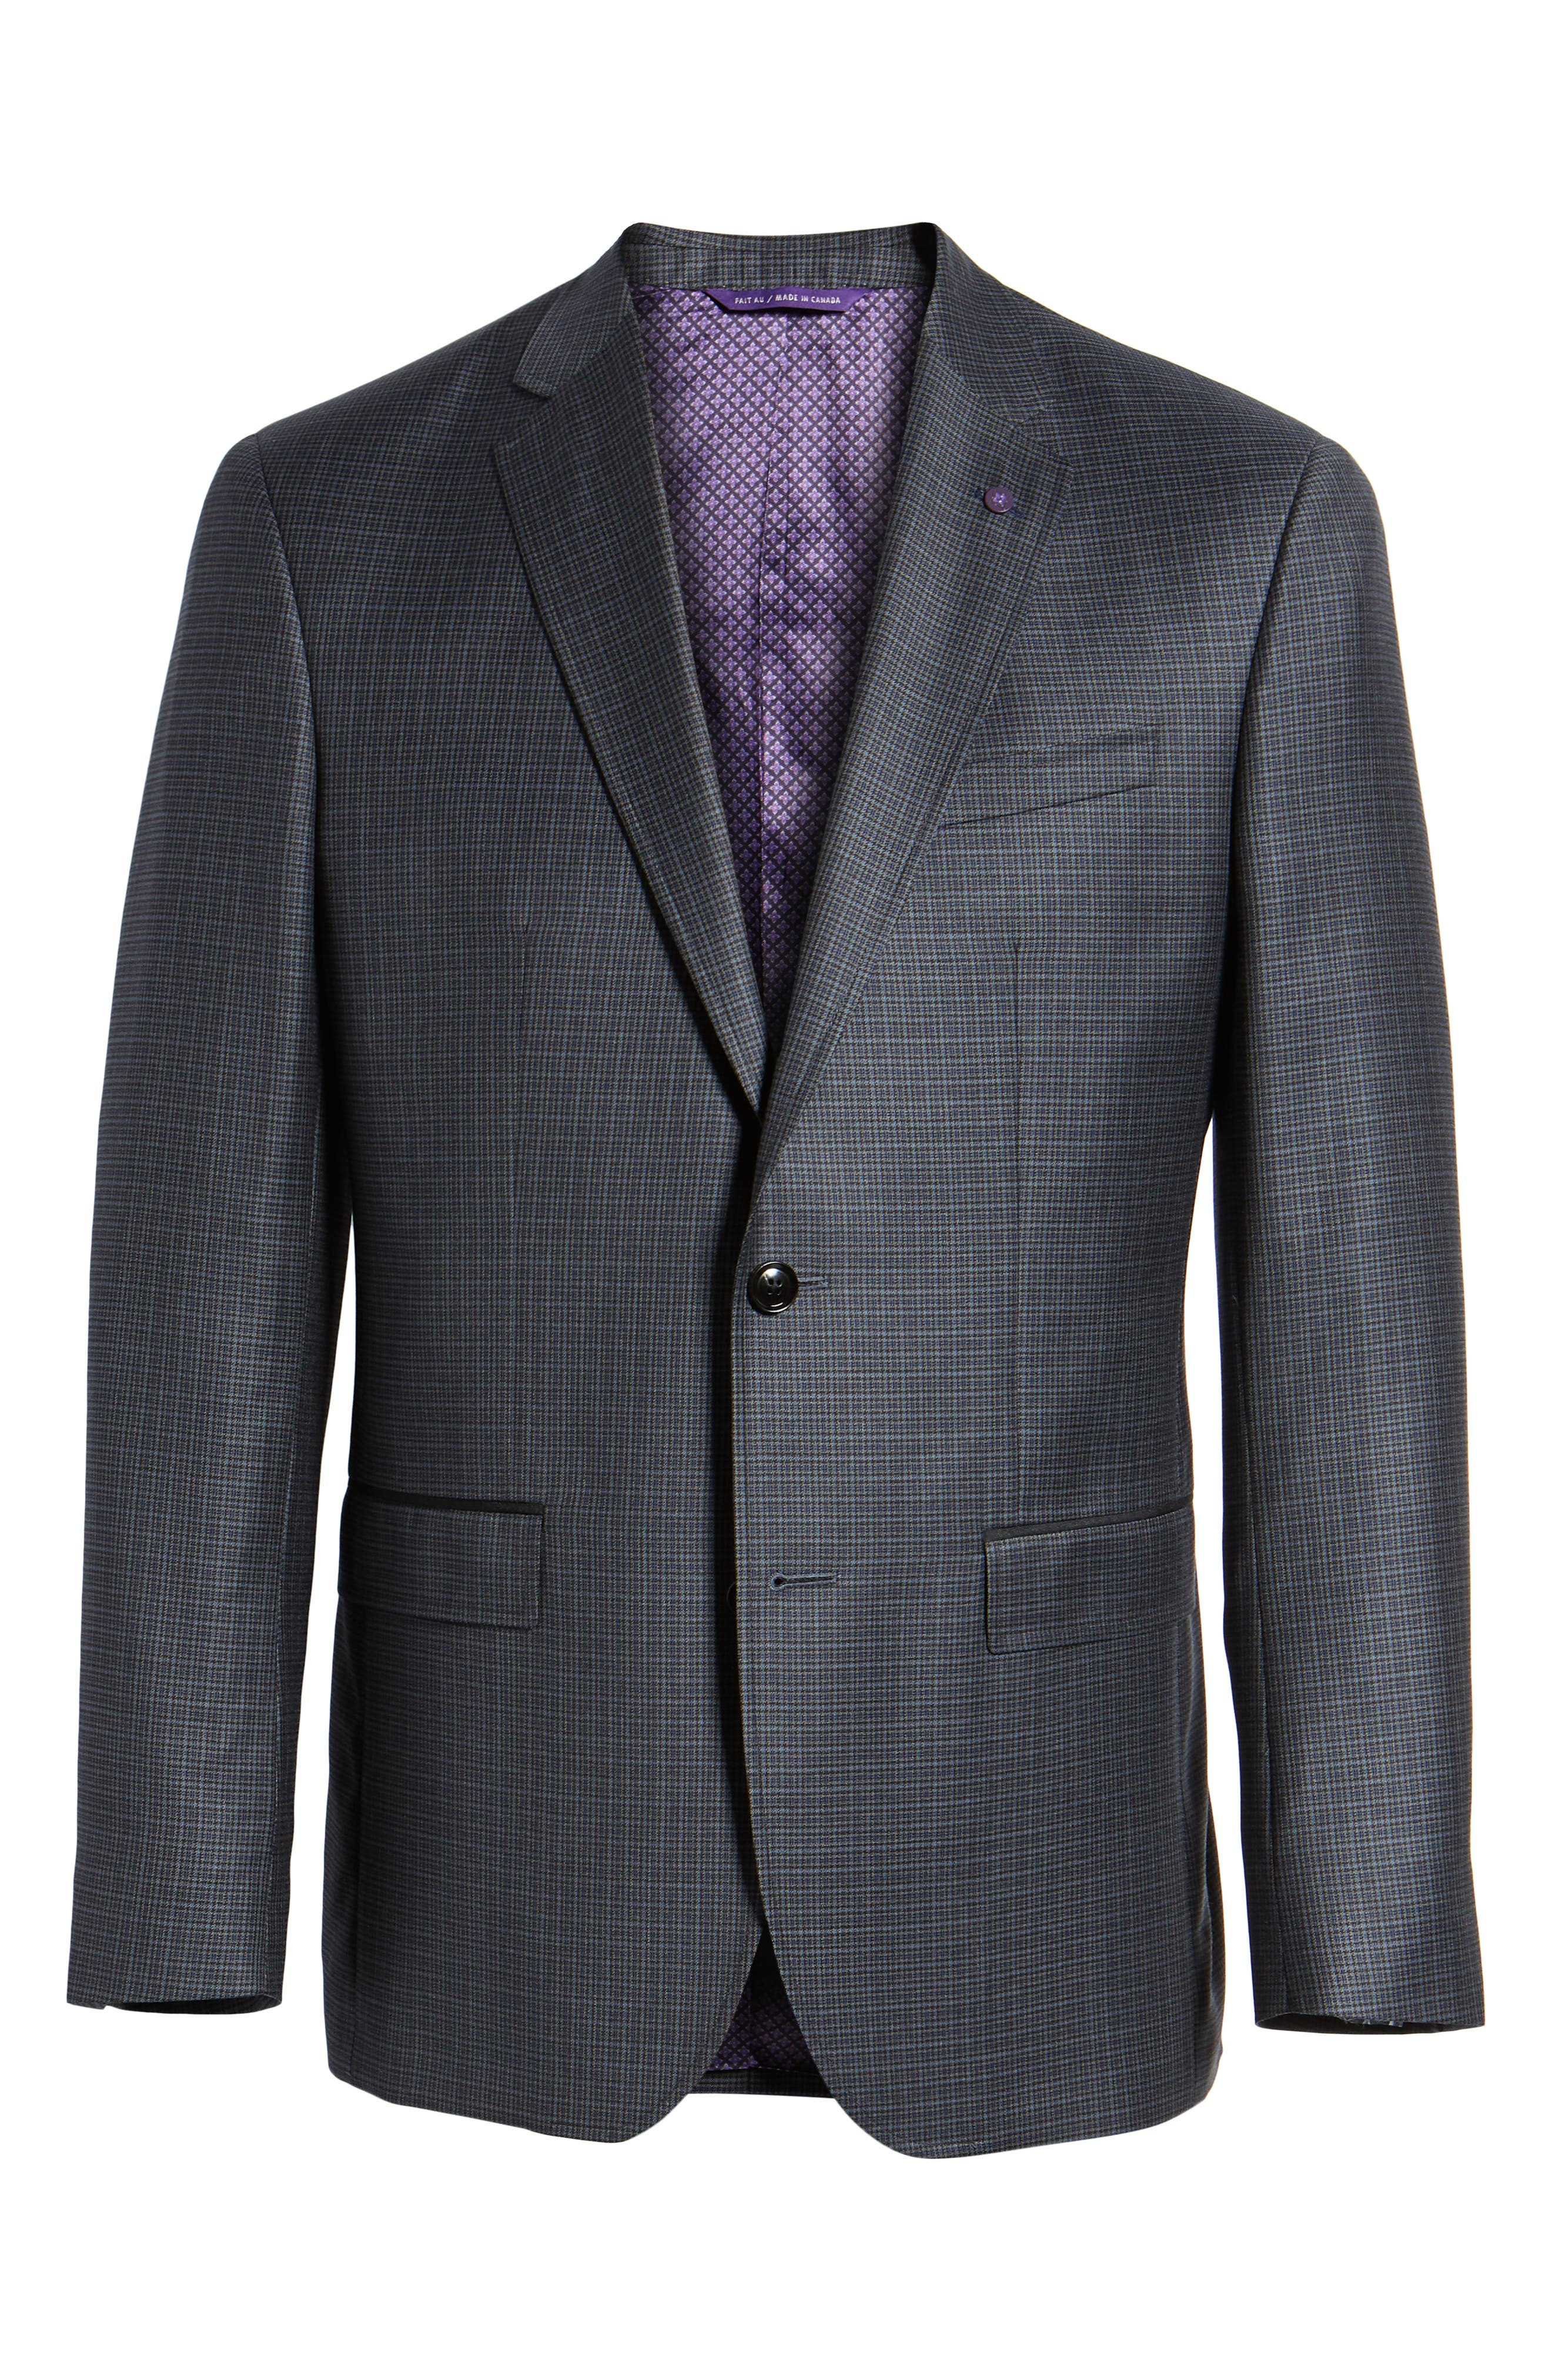 TED BAKER LONDON,                             Jed Trim Fit Microcheck Wool Sport Coat,                             Alternate thumbnail 5, color,                             020